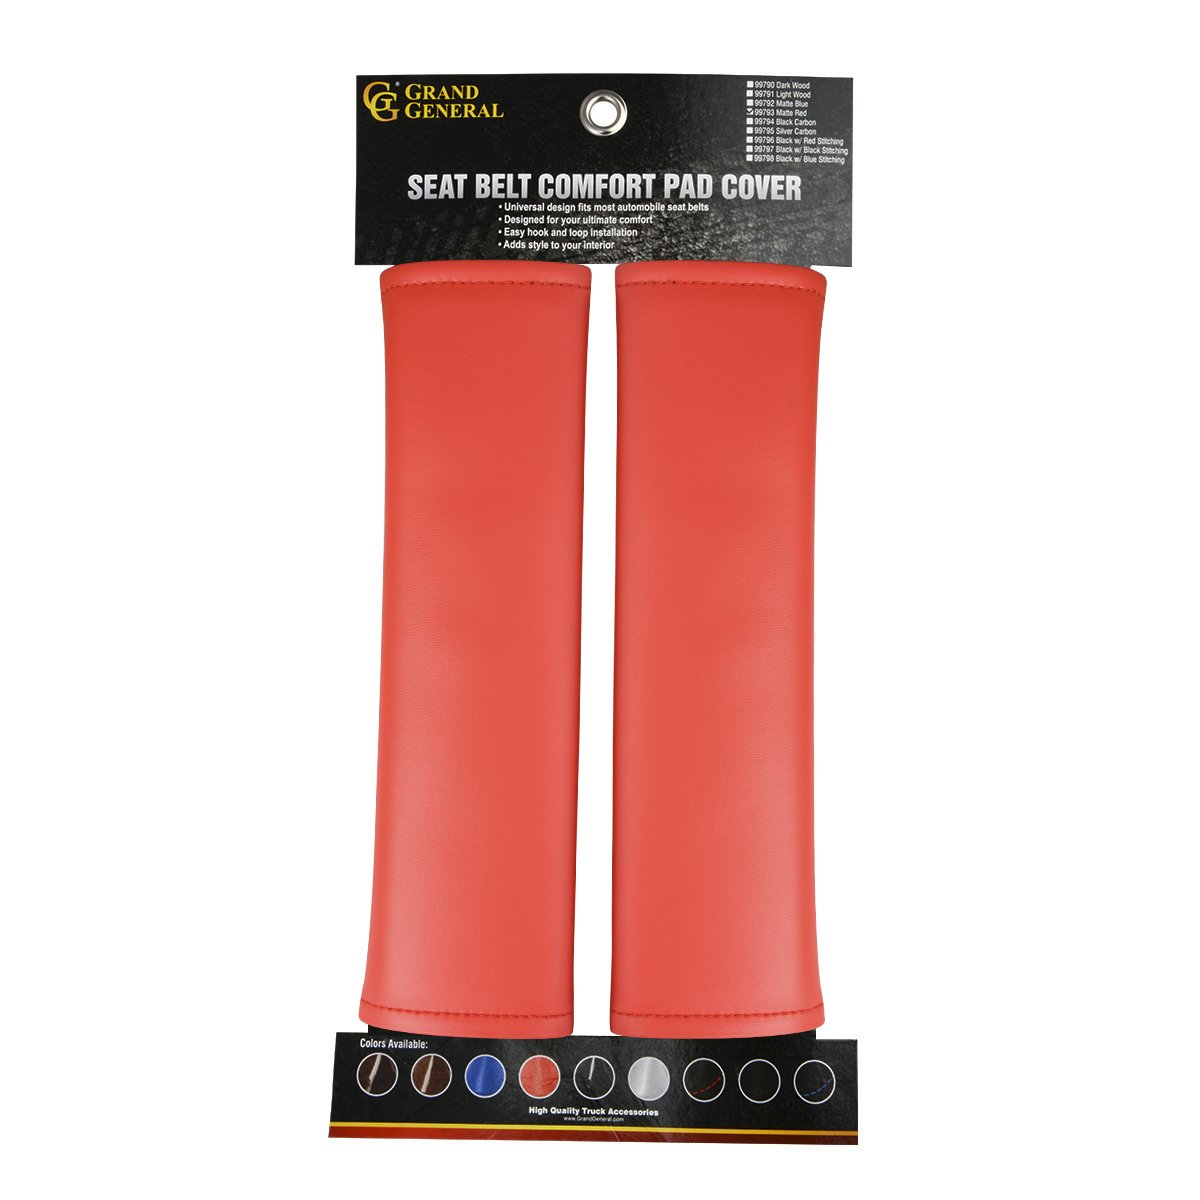 Grand General 99794 Seat Belt Comfort Pad Cover for Trucks Buses RVs and Utility Vehicles